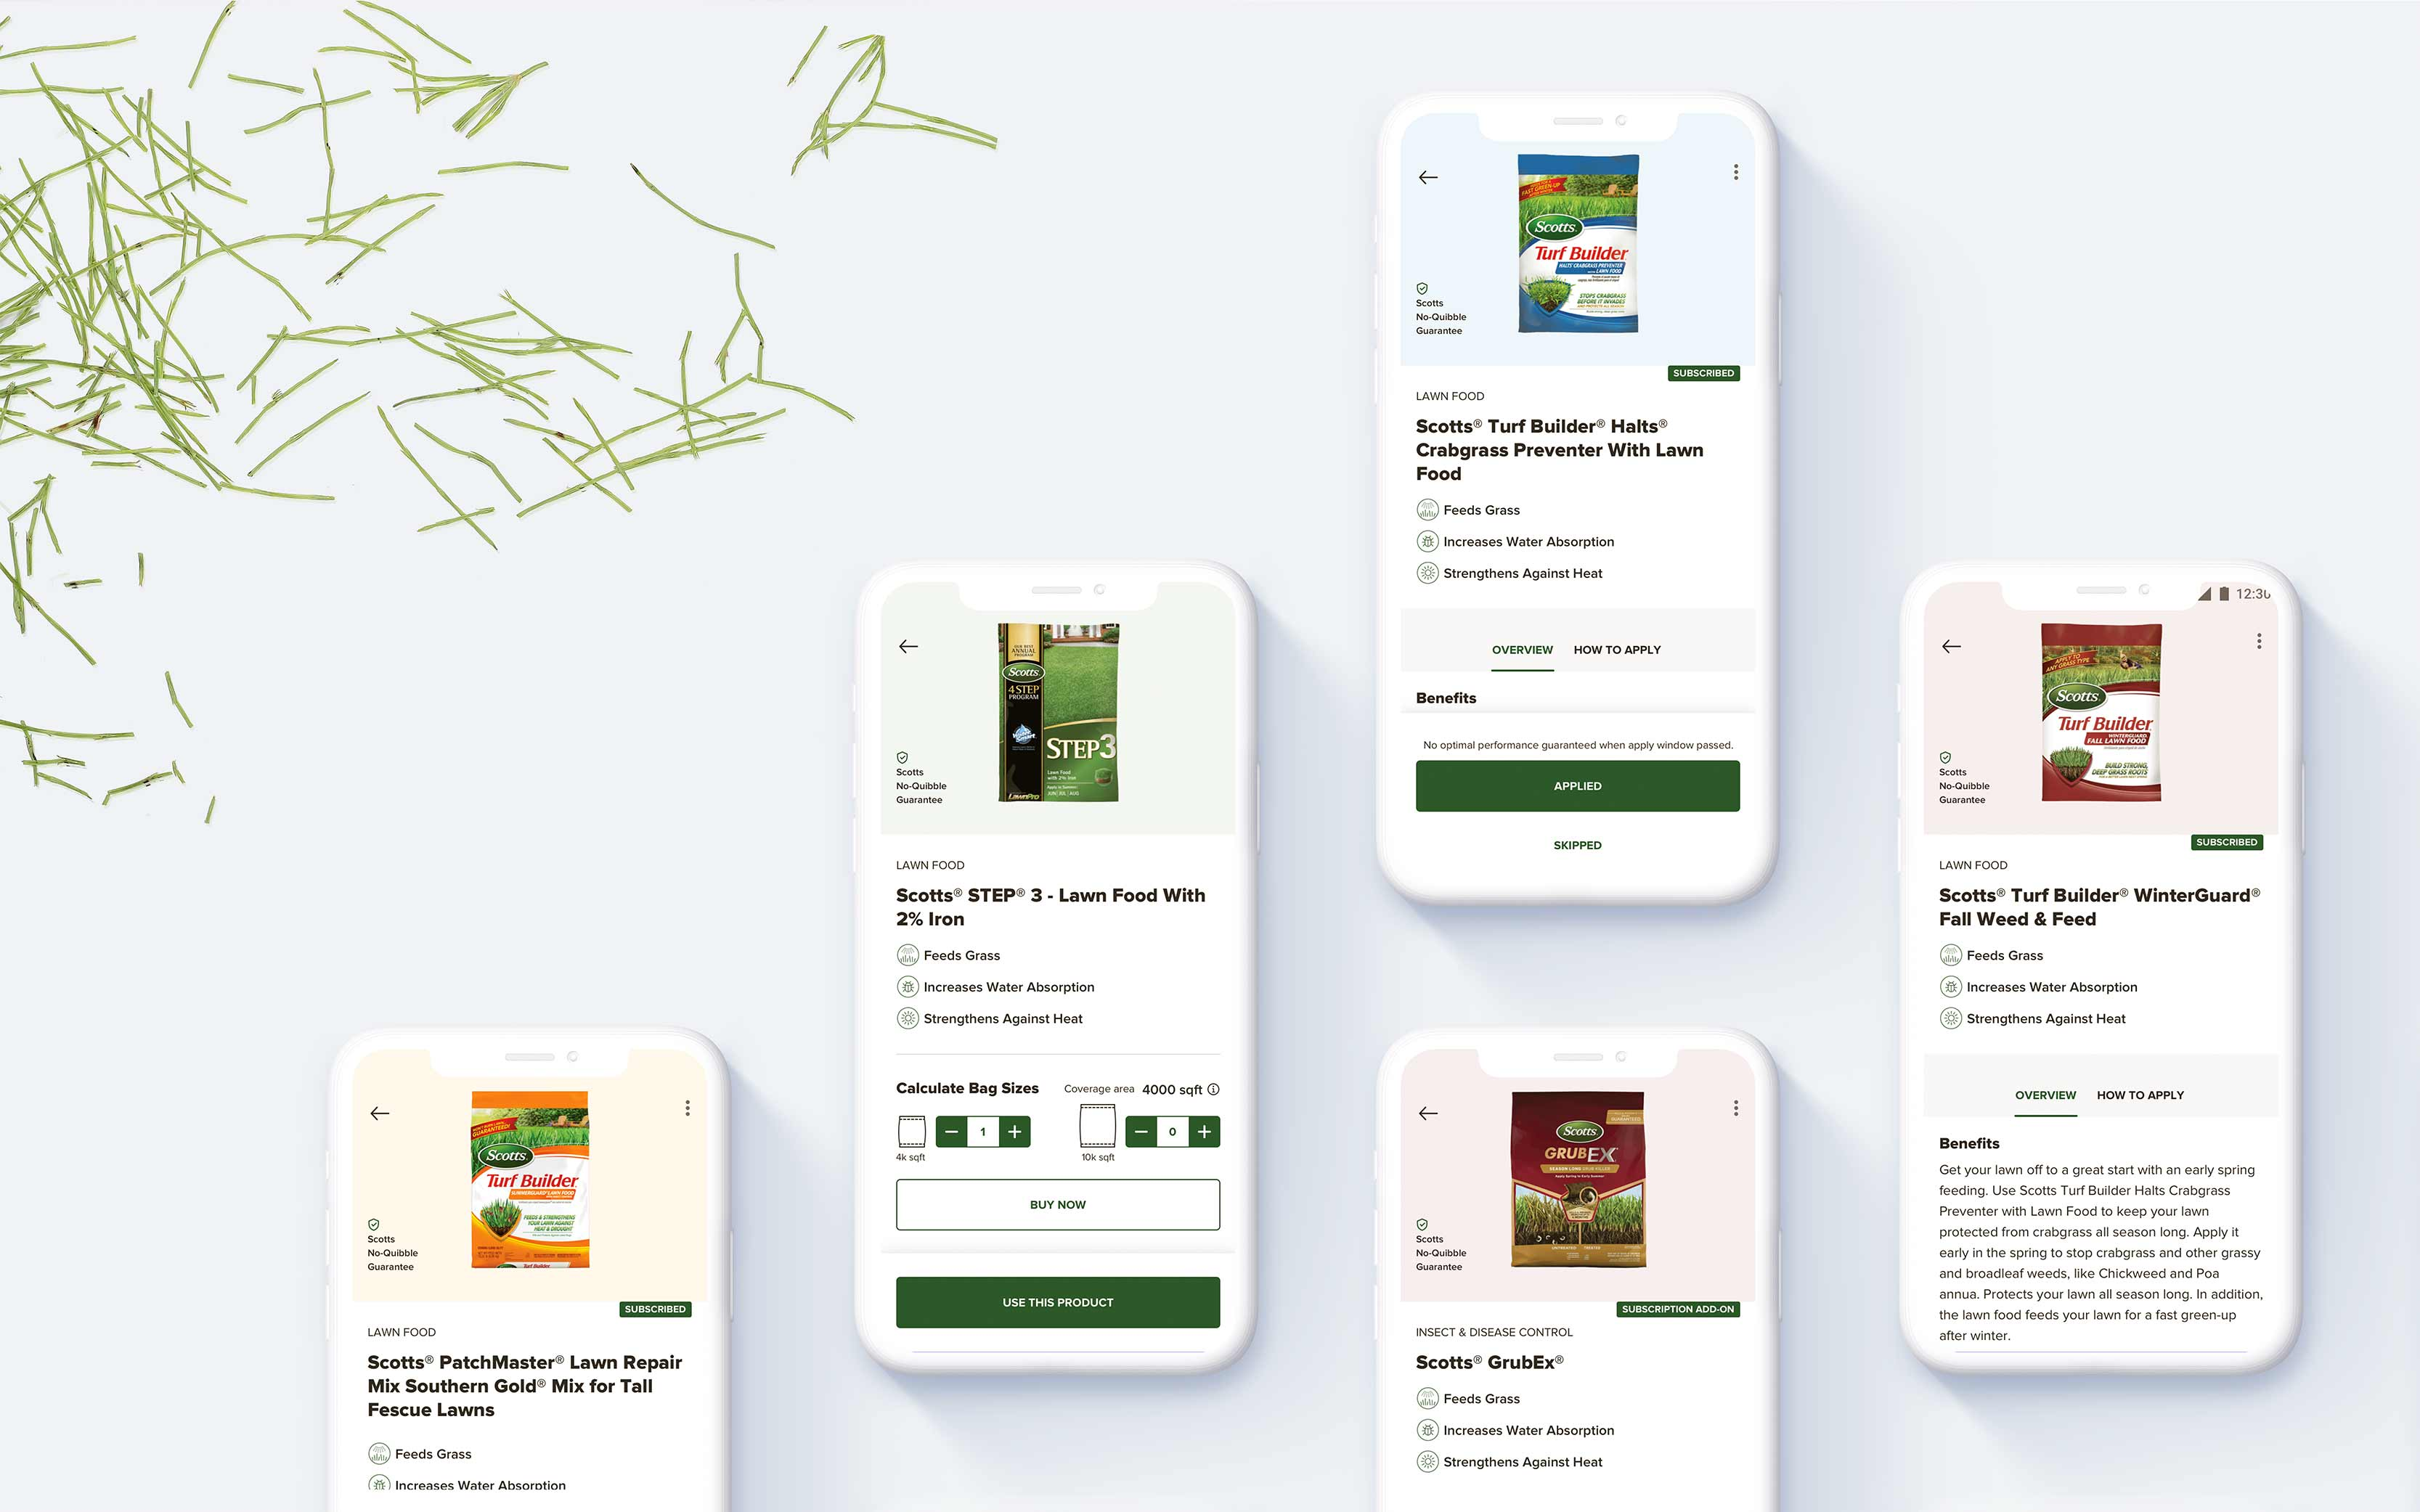 5 screens that shows the bestsellers of Scotts Lawn Care products on the product detail page.